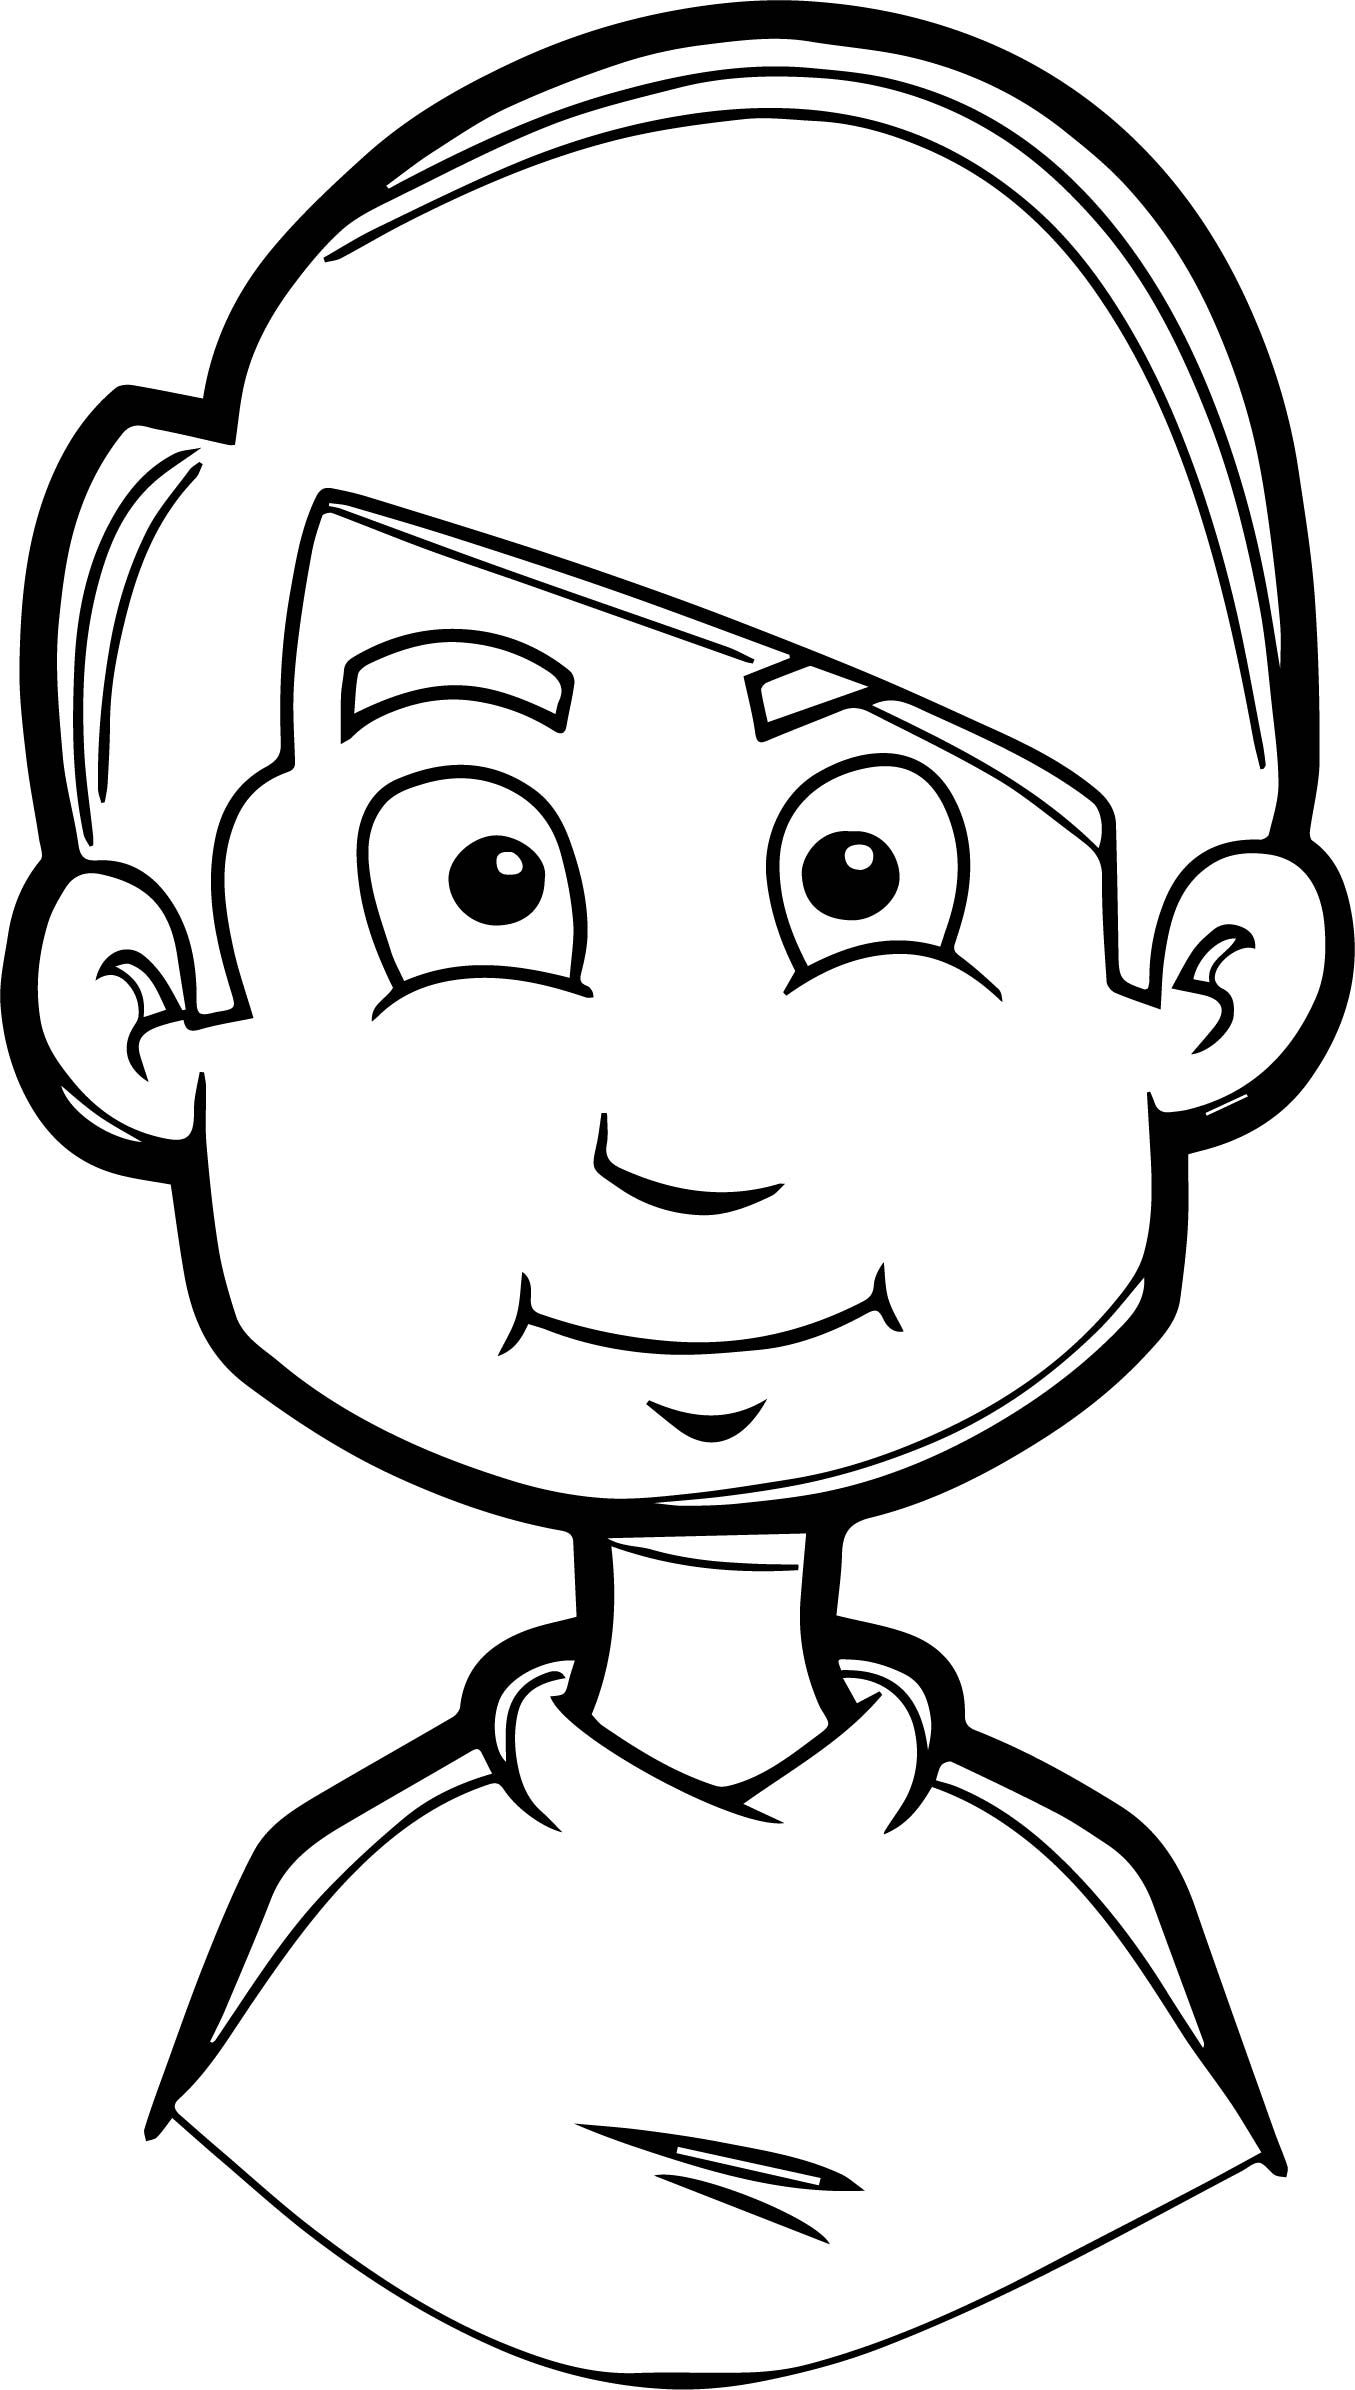 cool Boy Soccer Face Coloring Page | Sports coloring pages, Football coloring  pages, Superhero coloring pages